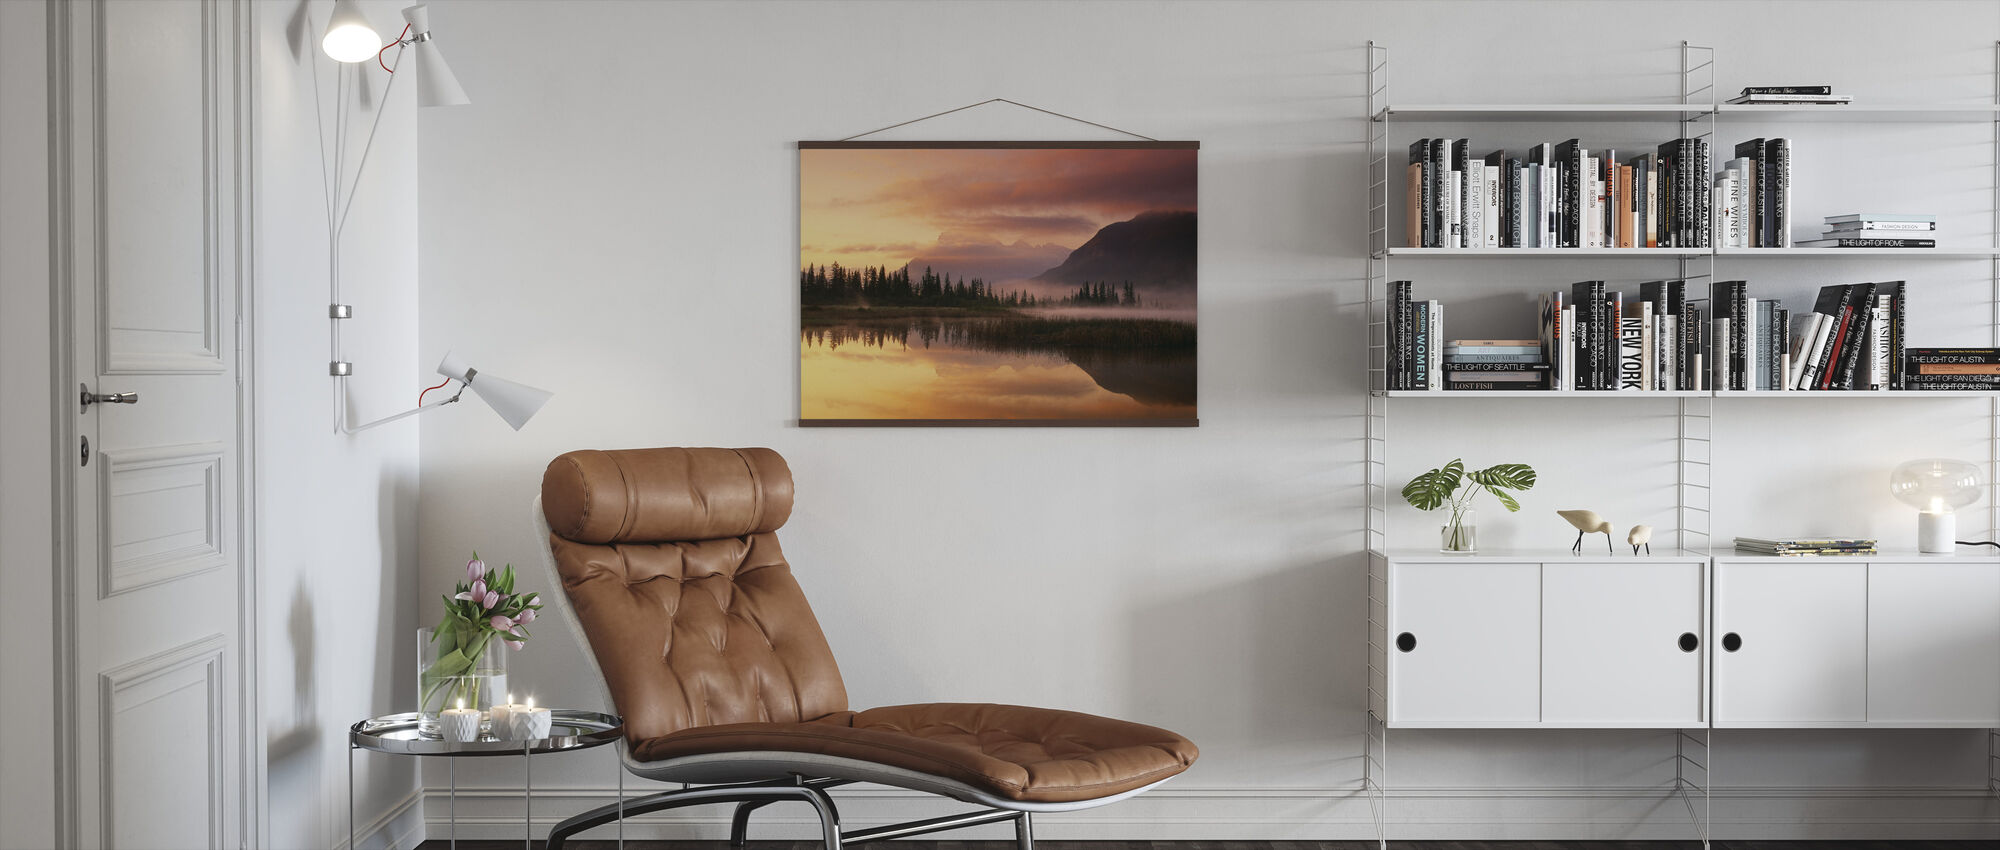 Orange Reflection - Poster - Living Room